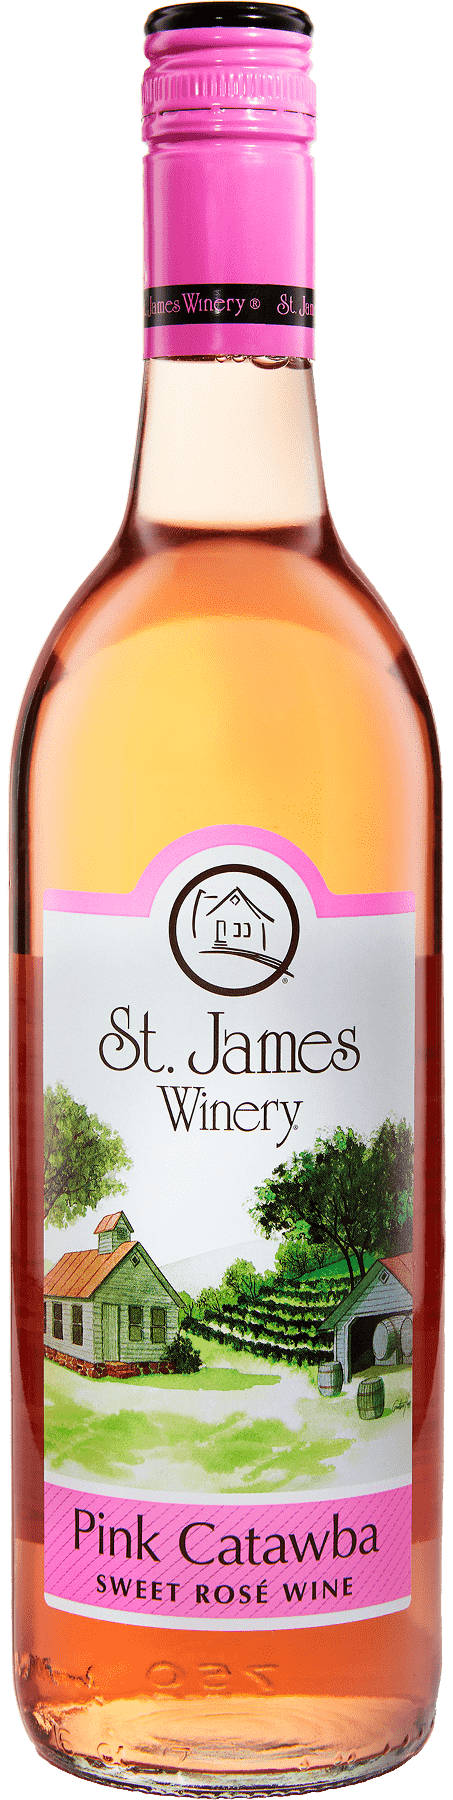 Pink Catawba Sweet Rose Wine - St. James Winery Missouri